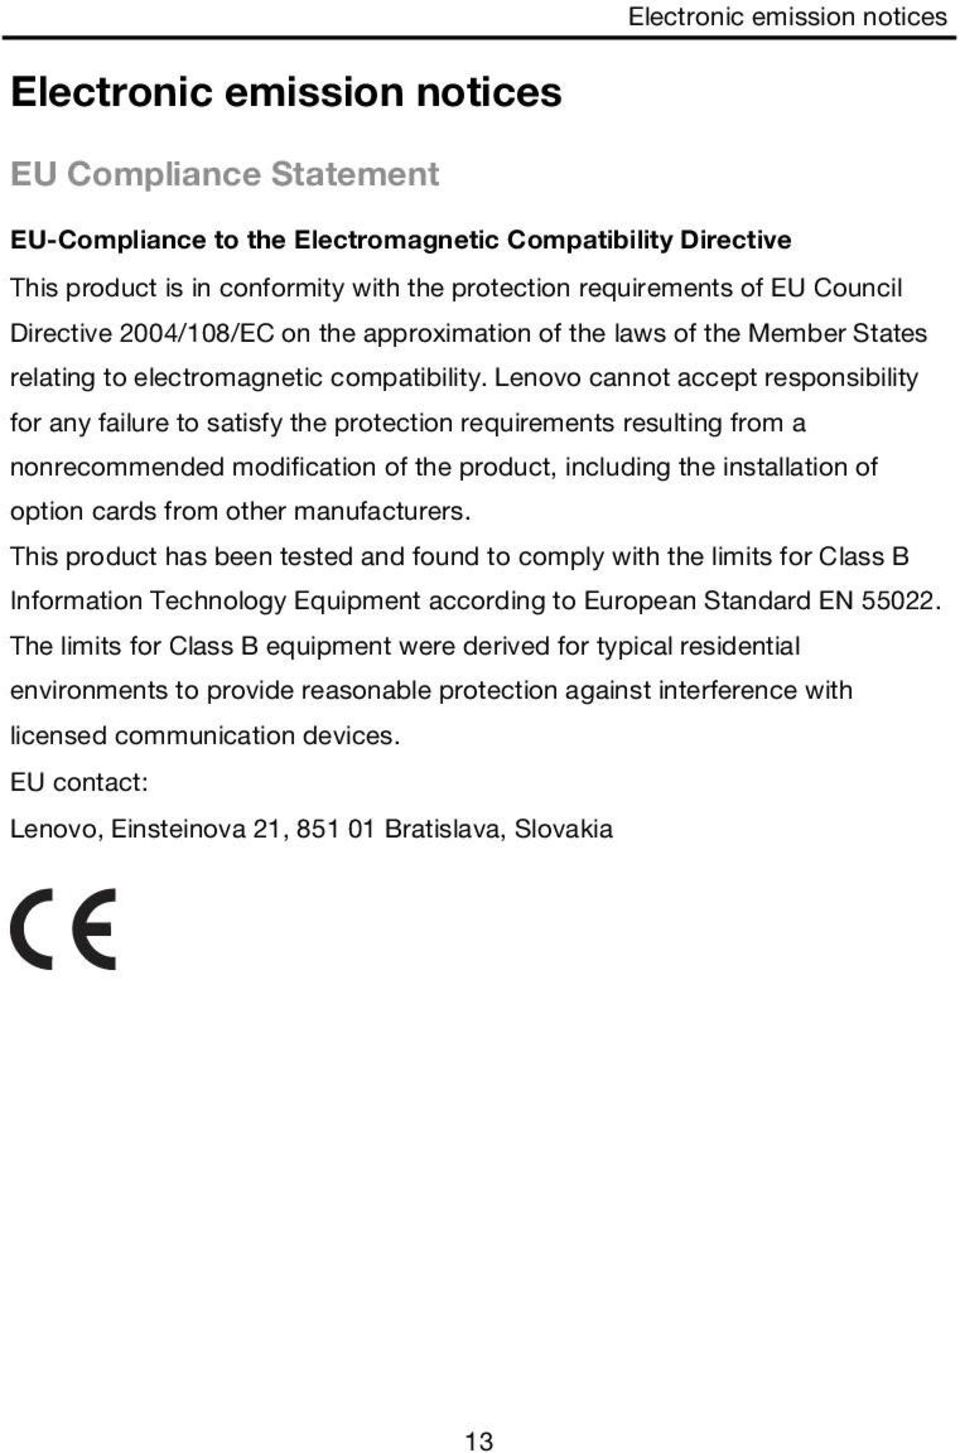 Lenovo cannot accept responsibility for any failure to satisfy the protection requirements resulting from a nonrecommended modification of the product, including the installation of option cards from